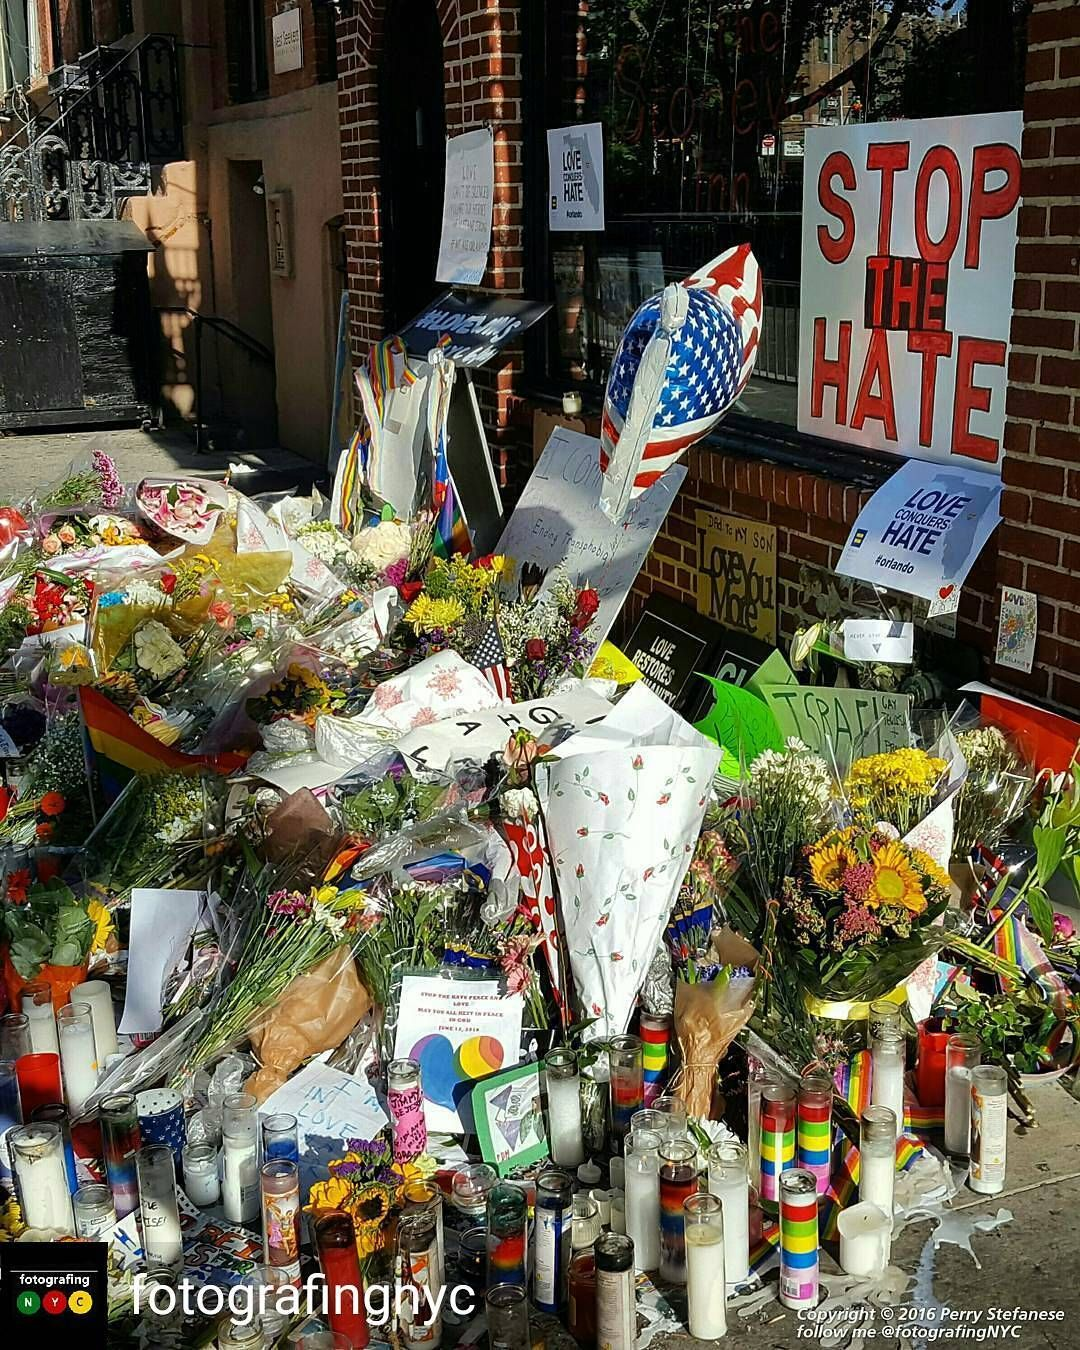 Photo by @fotografingnyc: Walked past the Stonewall Inn on the way to the train this morning to find the growing memorial. #WeAreOrlando